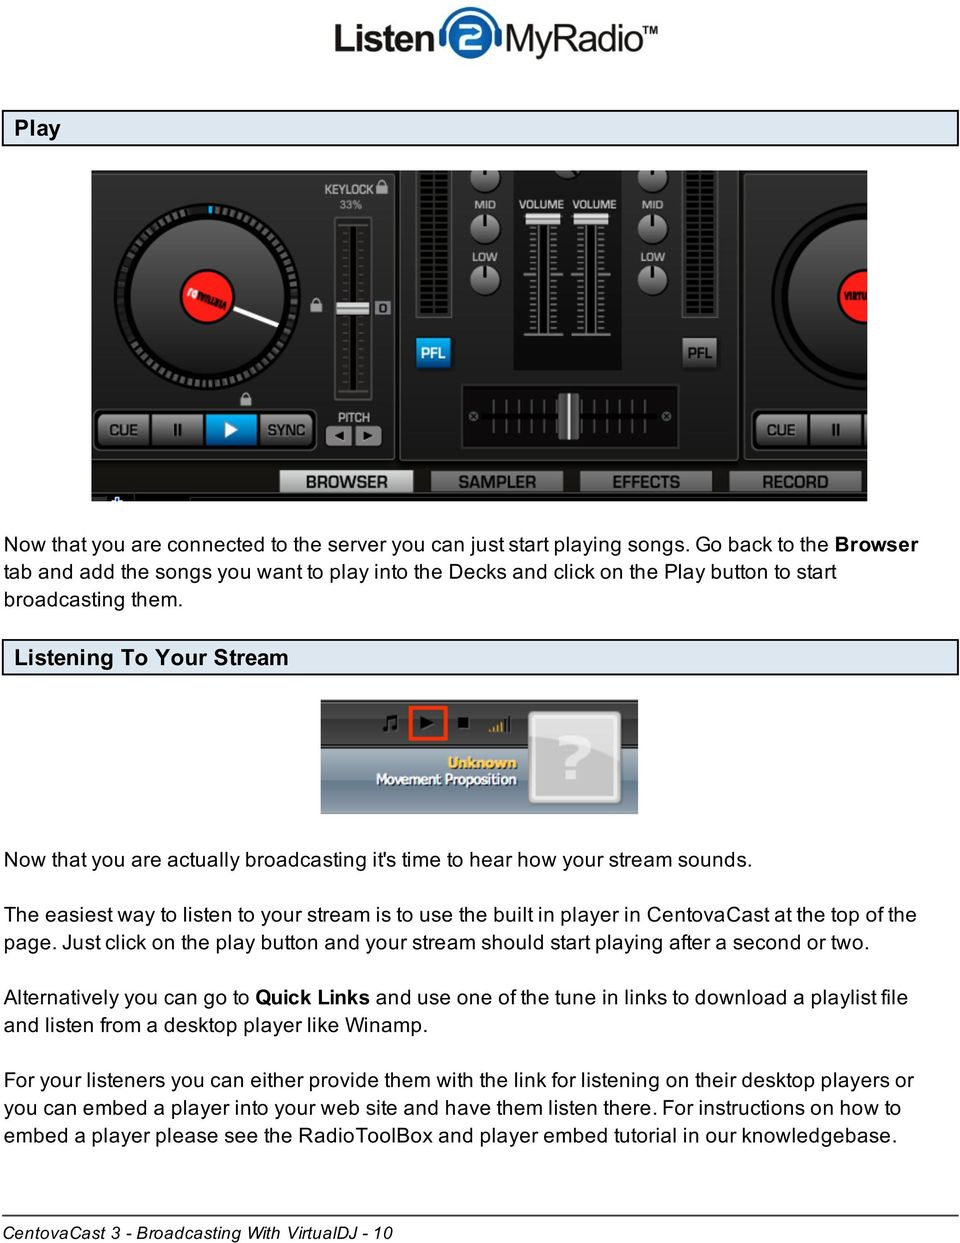 CentovaCast 3 - Broadcasting With VirtualDJ - PDF